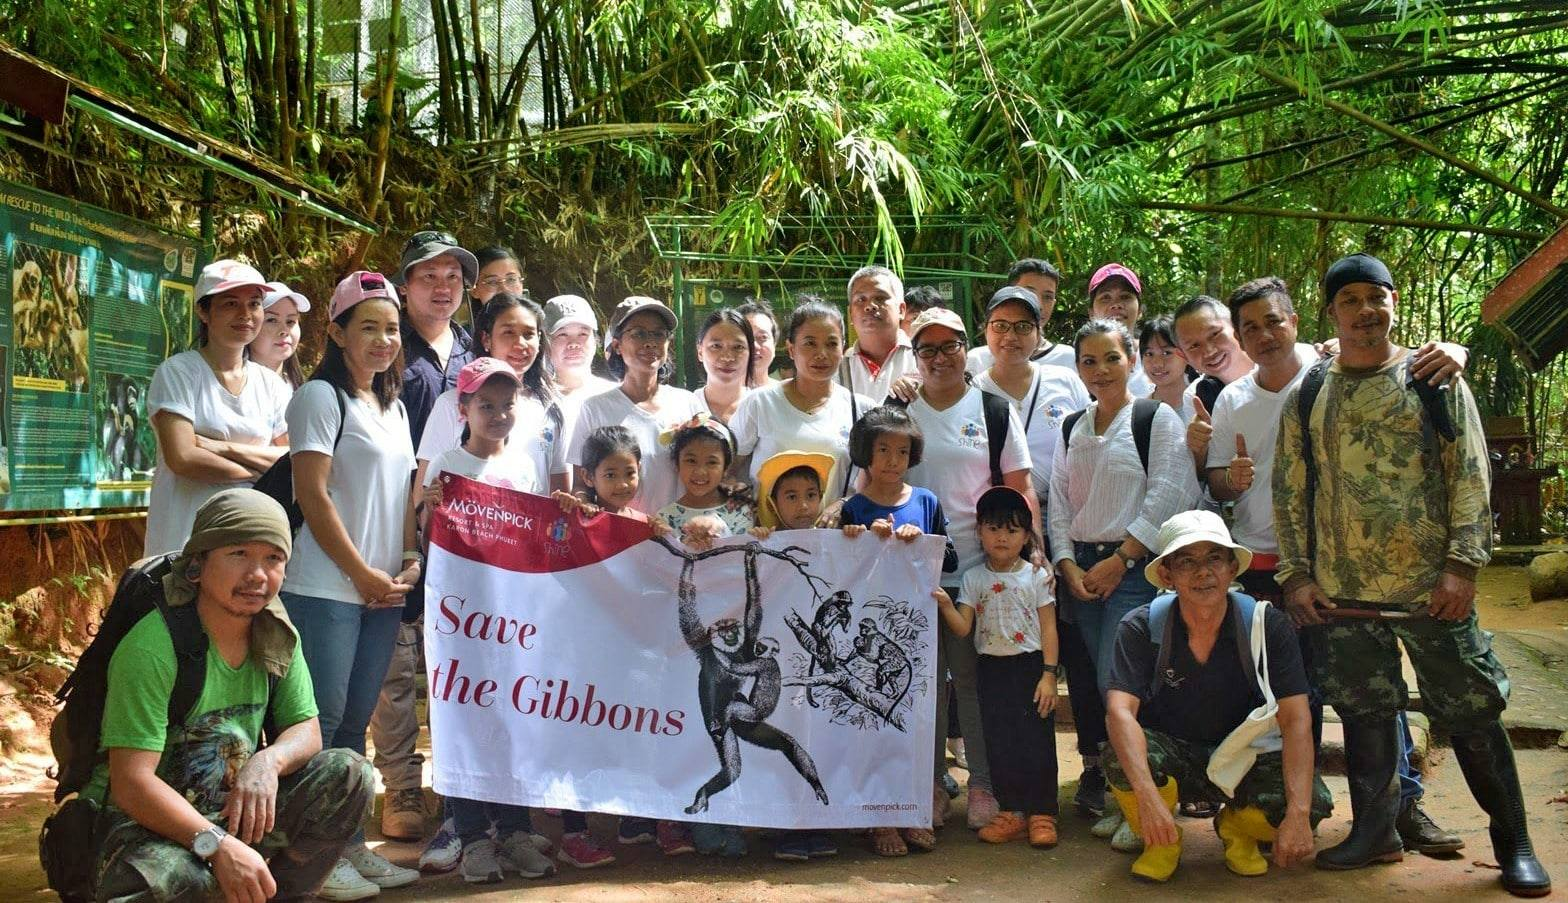 Mövenpick Resort & Spa Karon Beach adopts a gibbon from Phuket's Rehabilitation Centre | The Thaiger